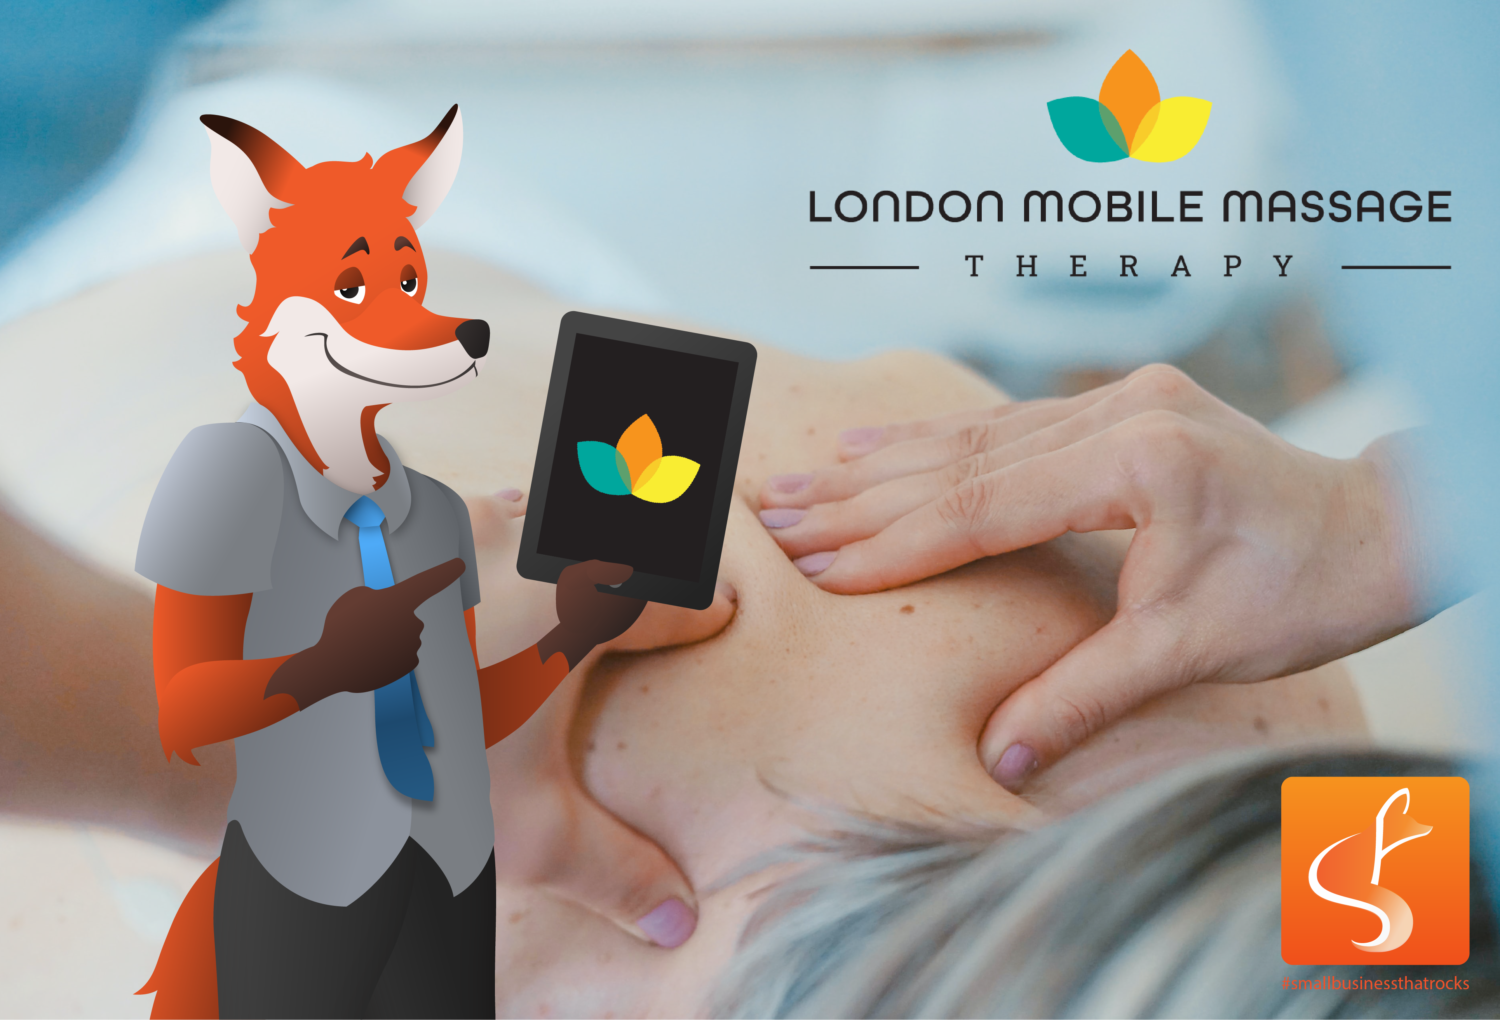 london mobile massage therapy